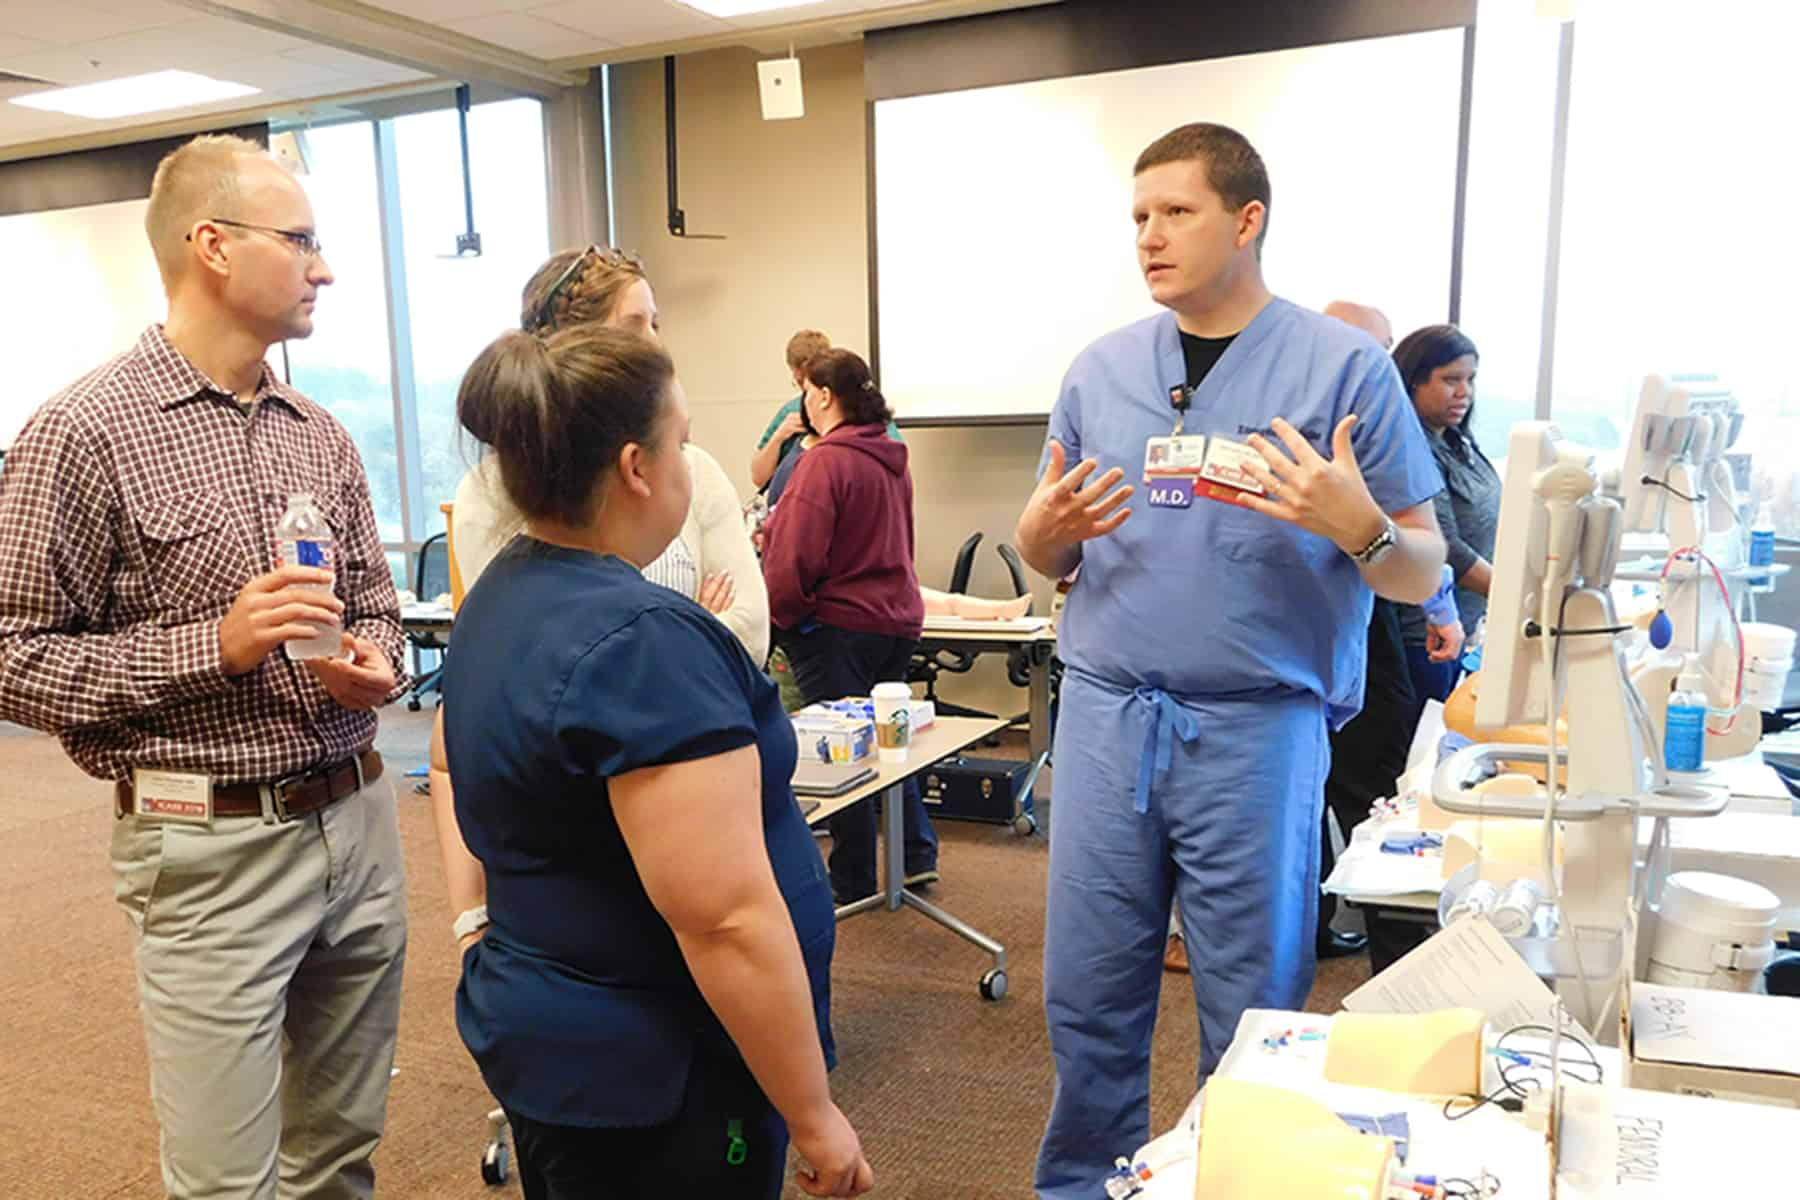 More than 180 health care professionals, first responders, police officers and firefighters attended the fourth annual ICARE Conference for Trauma Education at UAMS in Little Rock on April 6-7 to receive updates and additional training exercises on best practices in emergency care.